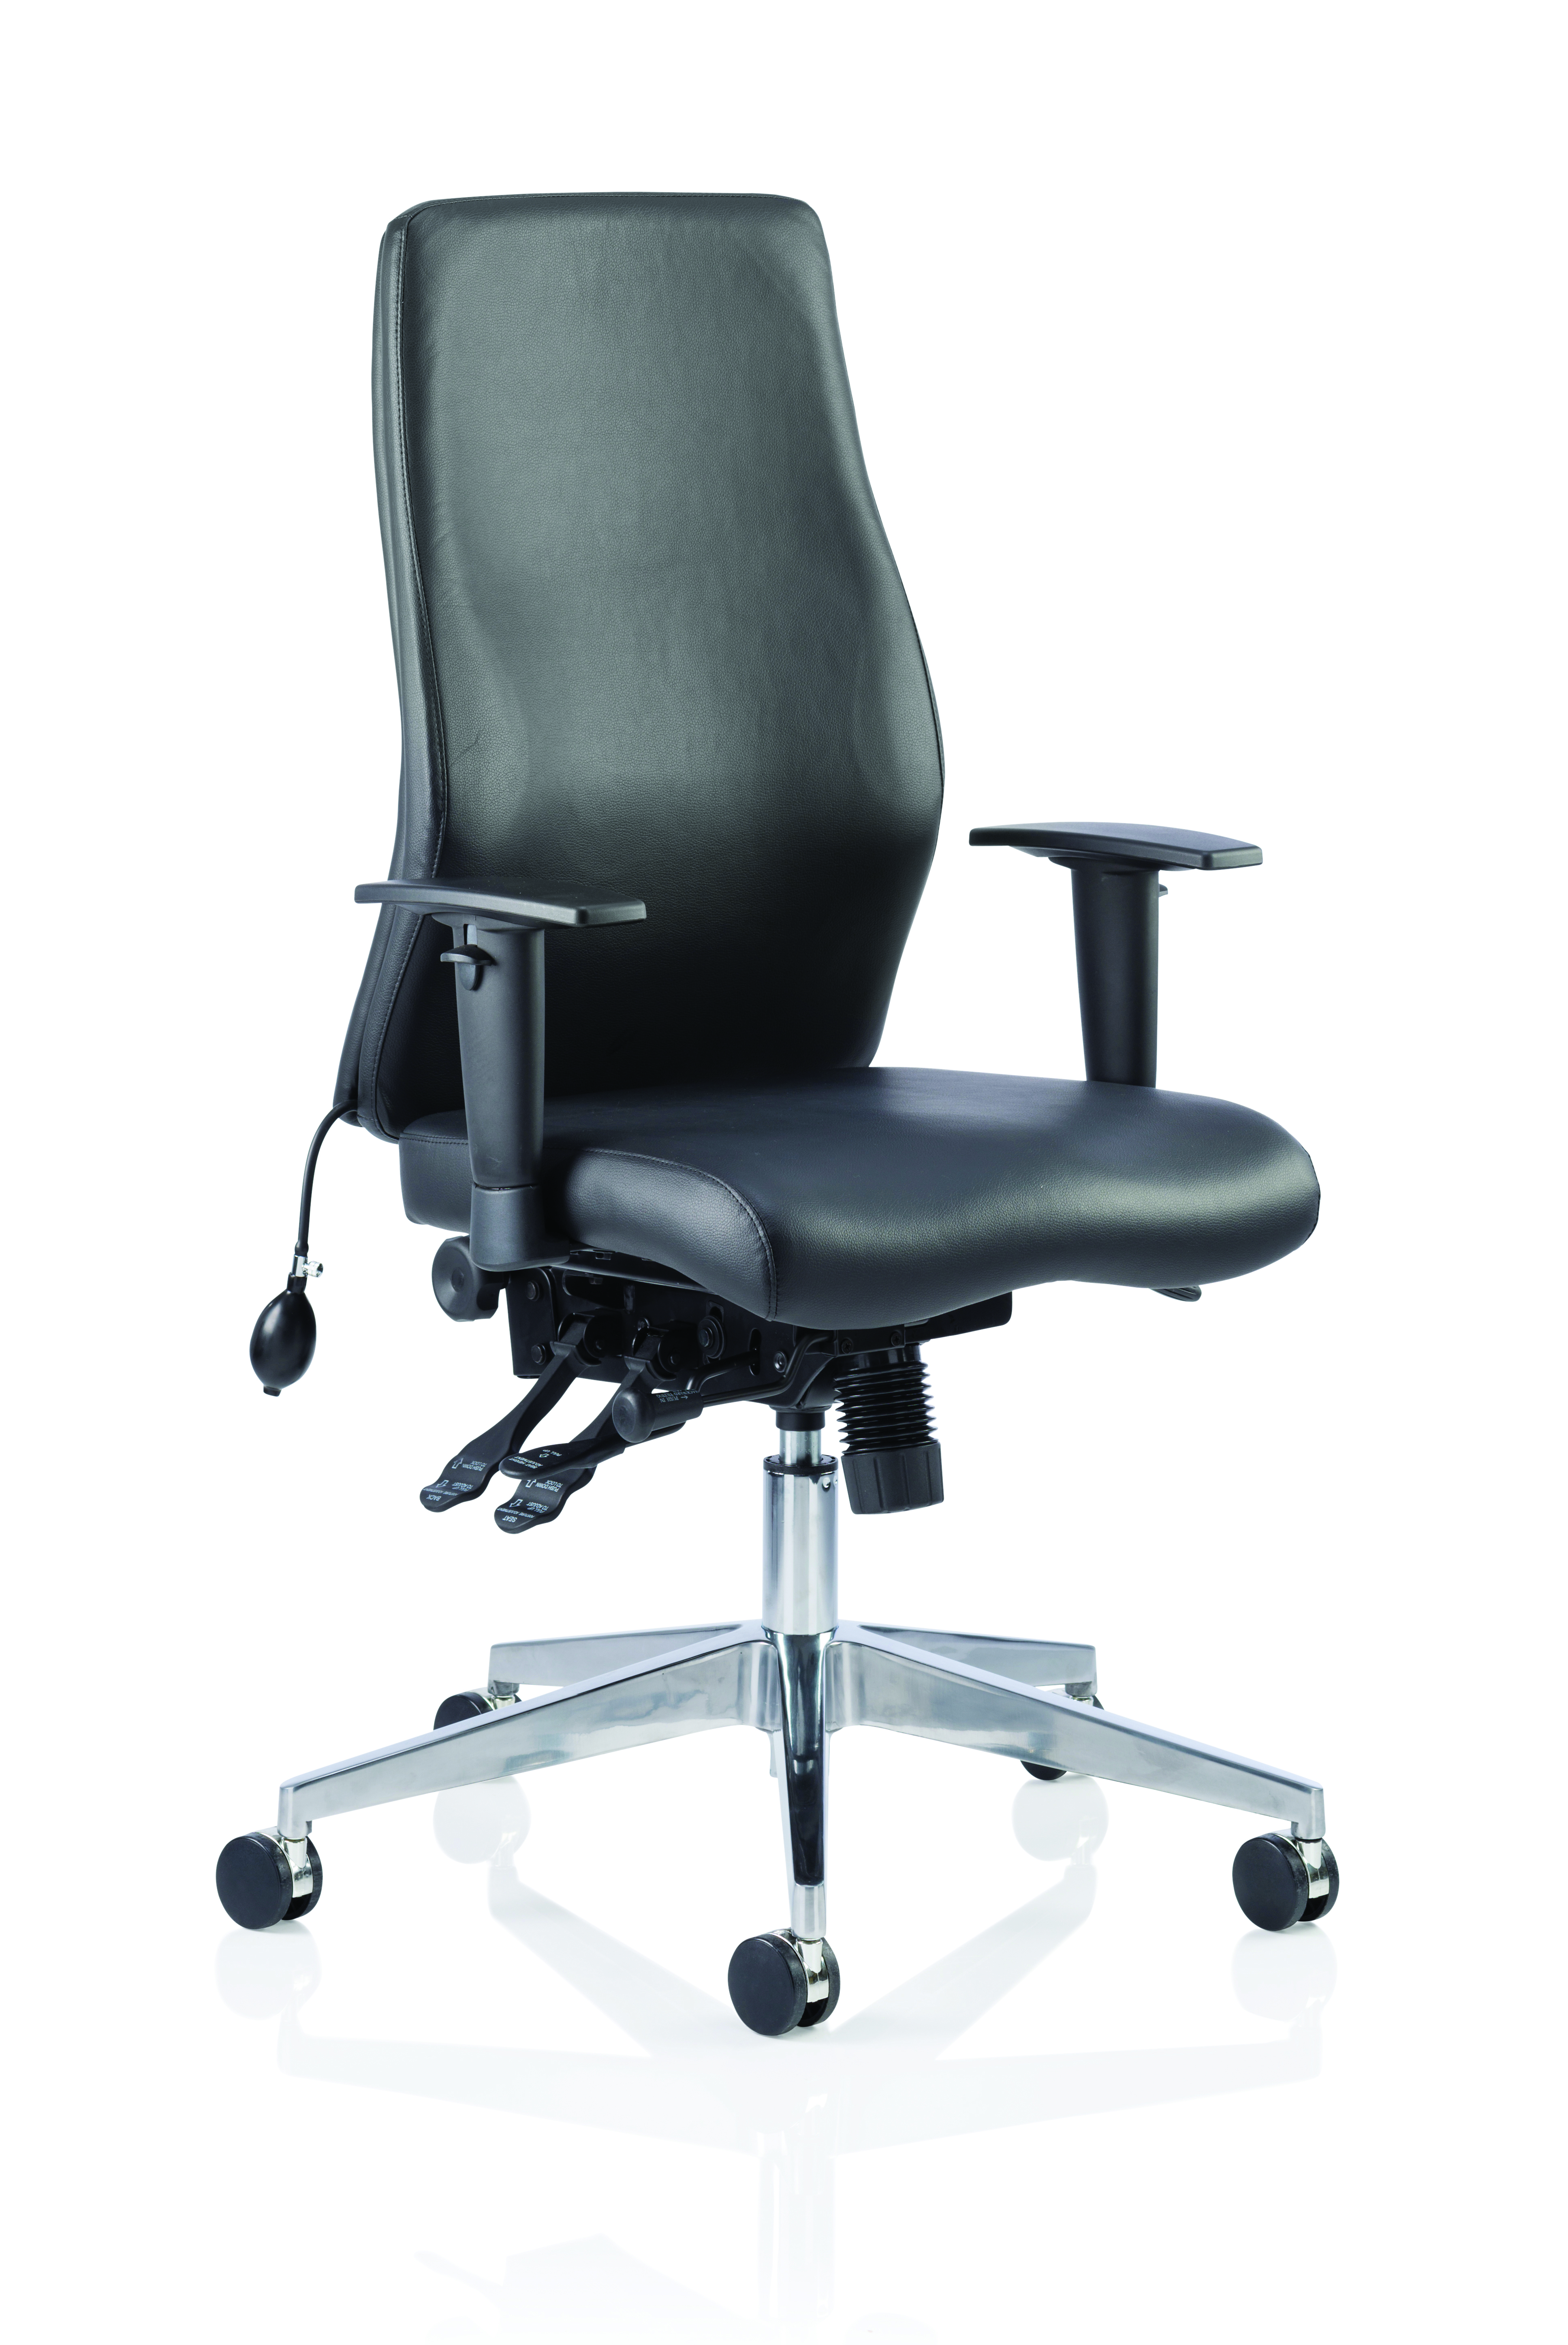 Desk Chairs Onyx Black Soft Bonded Leather Without Headrest With Arms OP000099